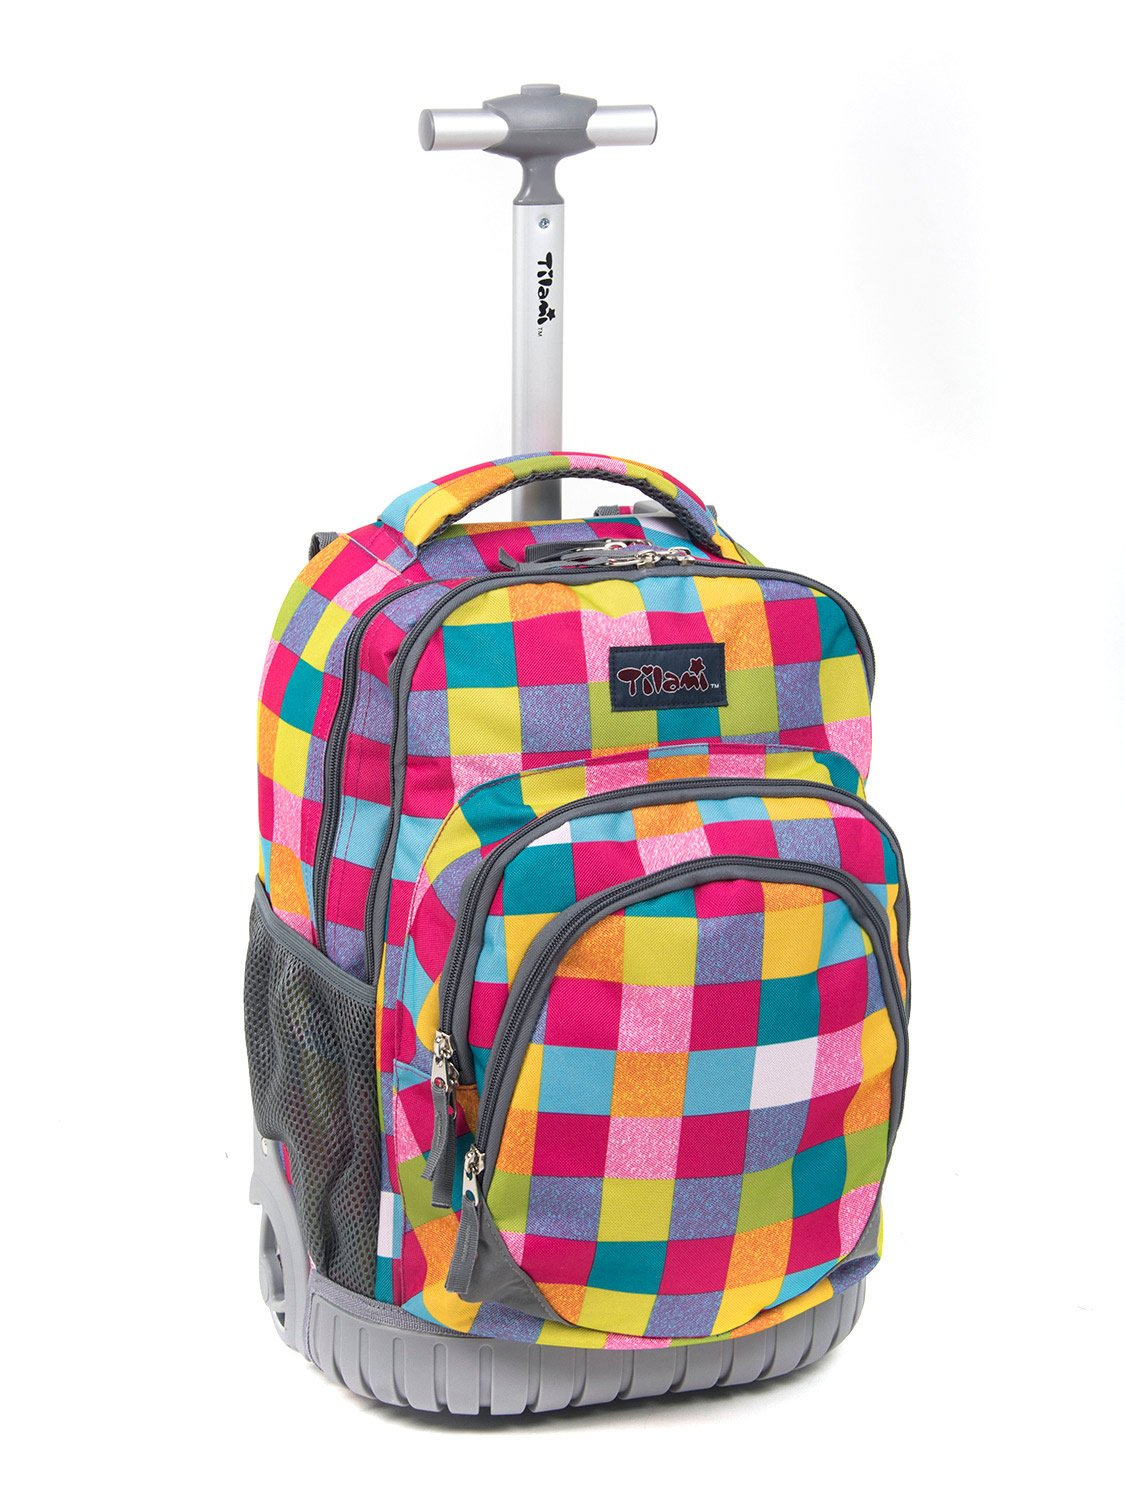 Most Comfortable Backpacks For College Students : Best-Rated Large ...